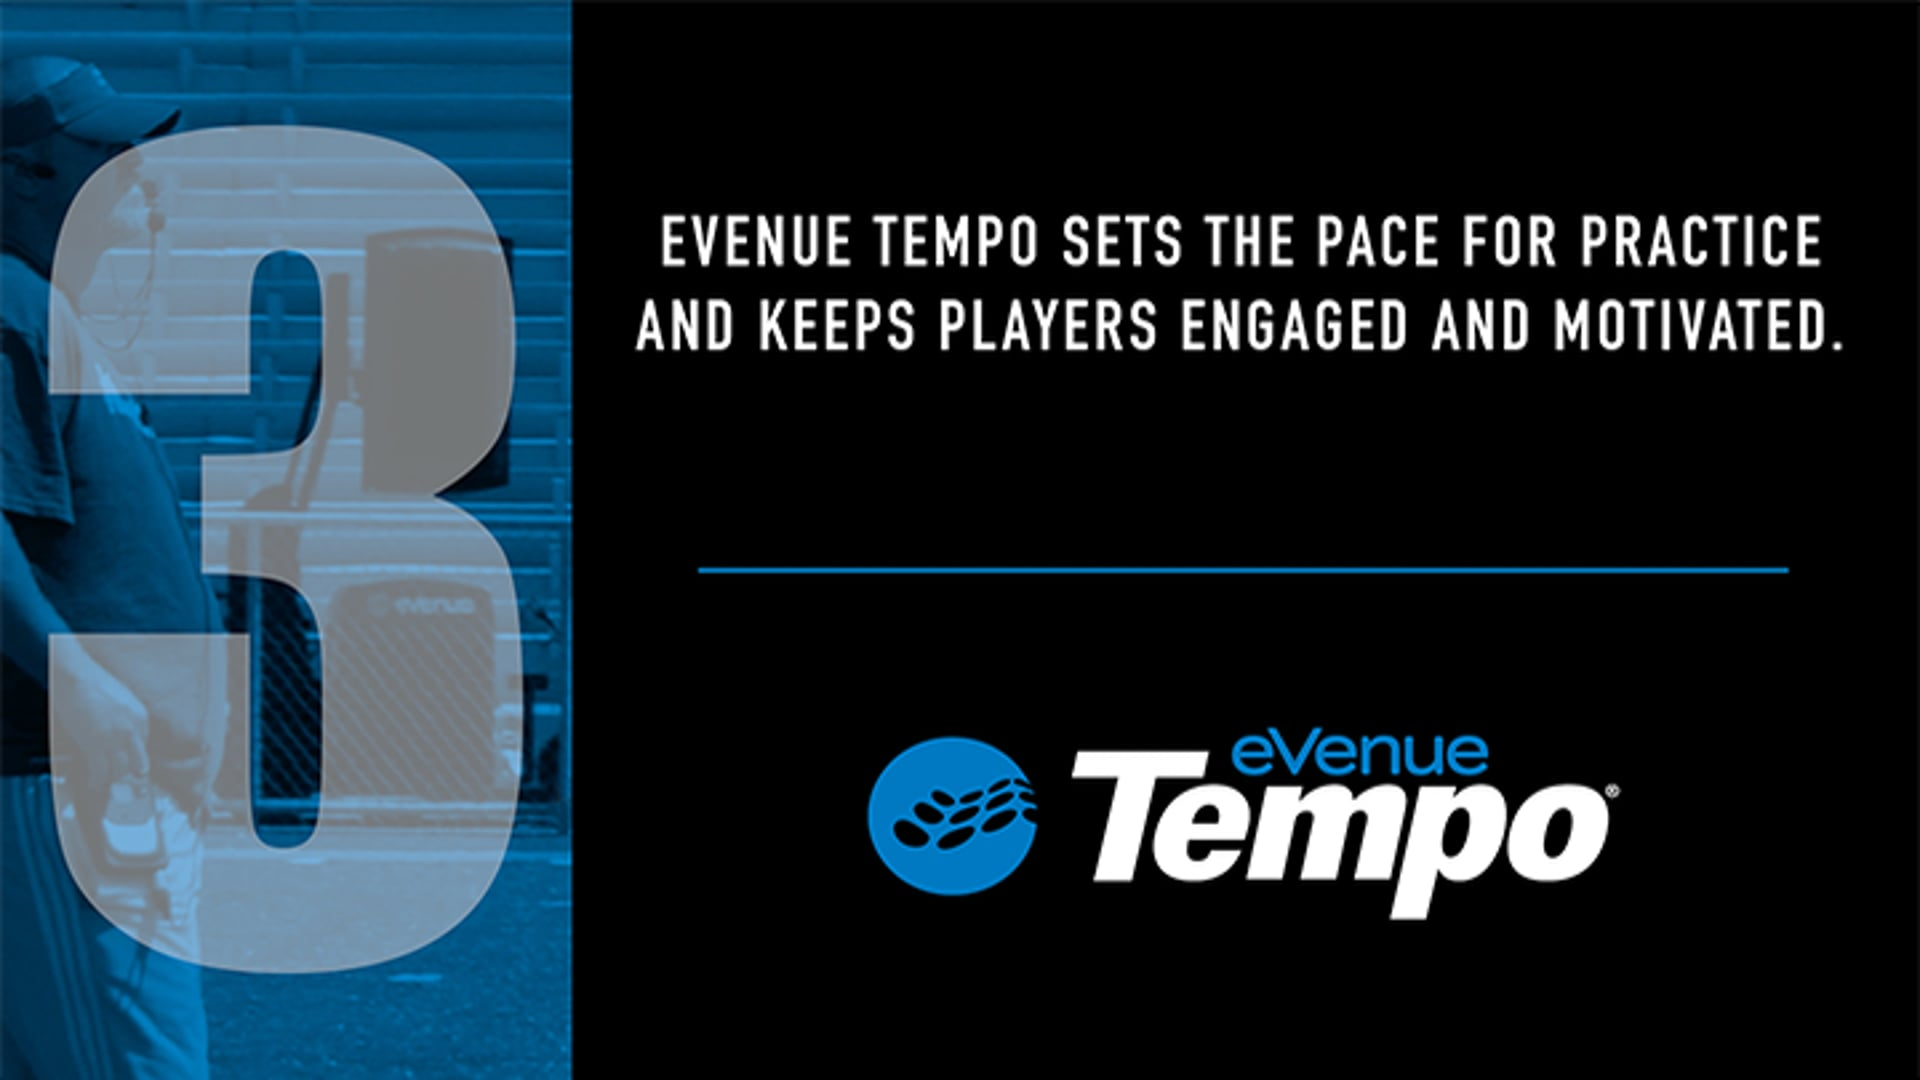 eVenue Tempo Sets the Pace for Practice and Keeps Players Engaged and Motivated